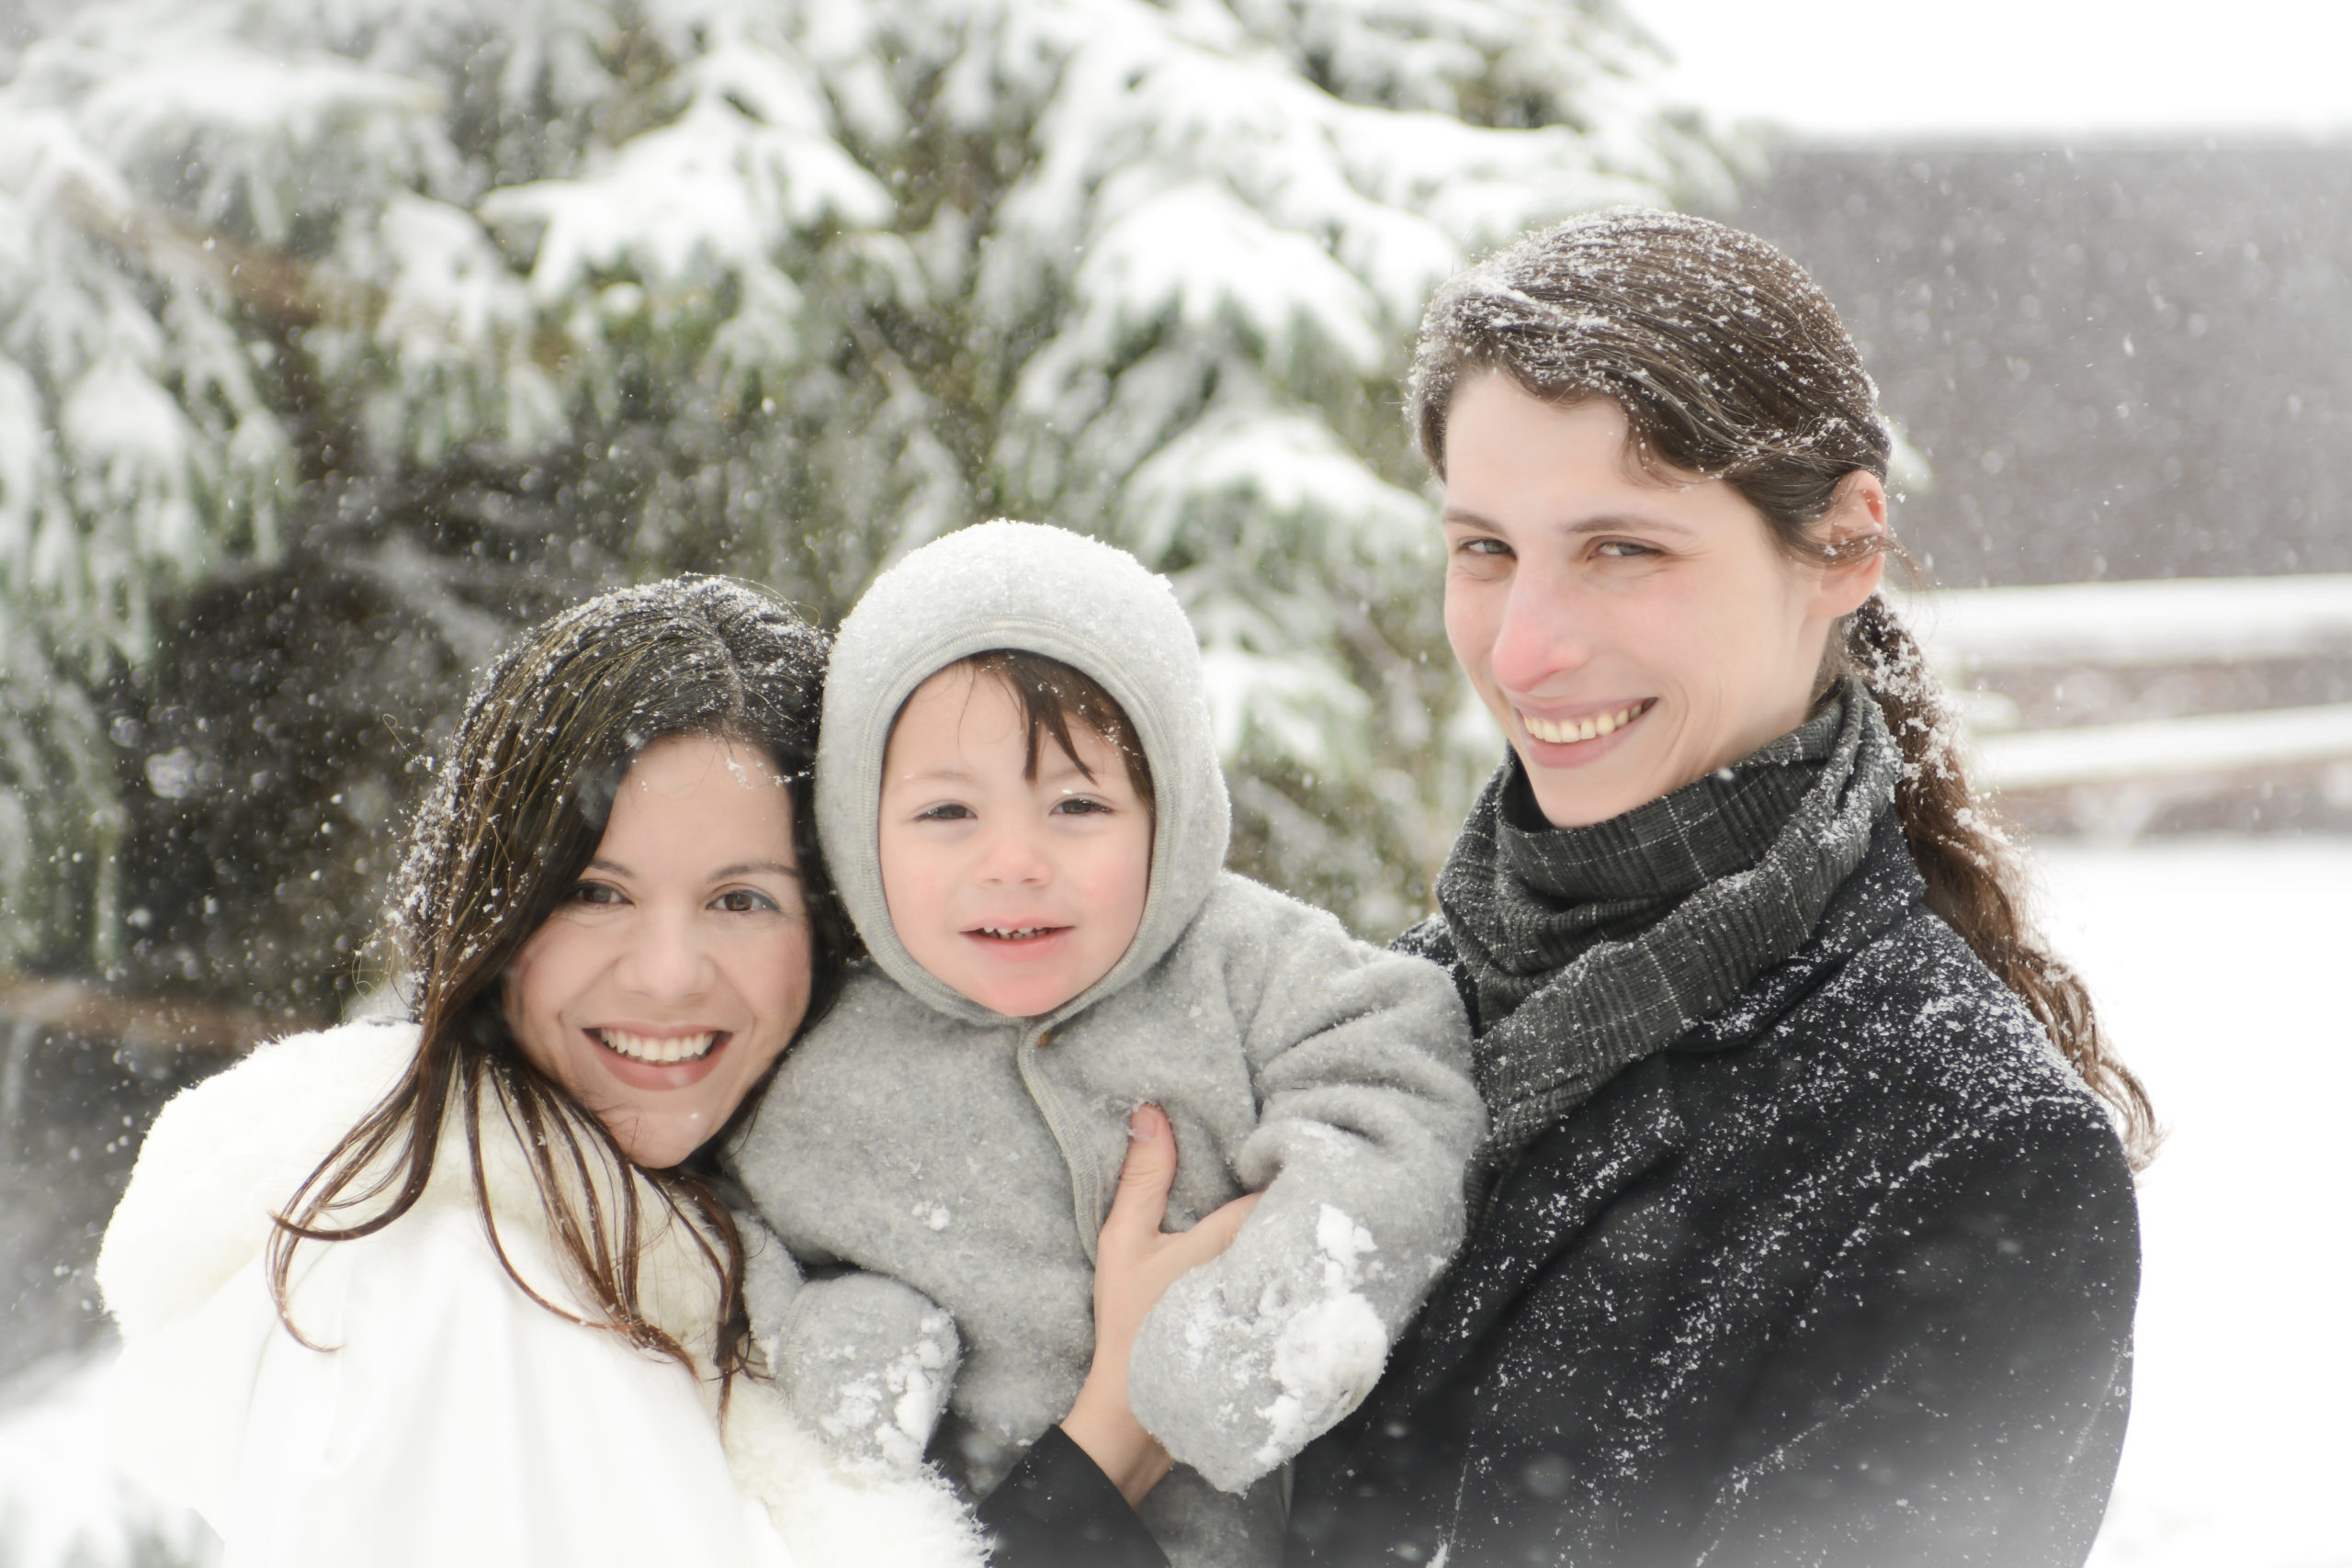 Dr. Kris Rizzotto, Dr. Clara Rizzotto, and Kristian Walter Rizzotto at home on a snowy Easter Sunday in Minnesota